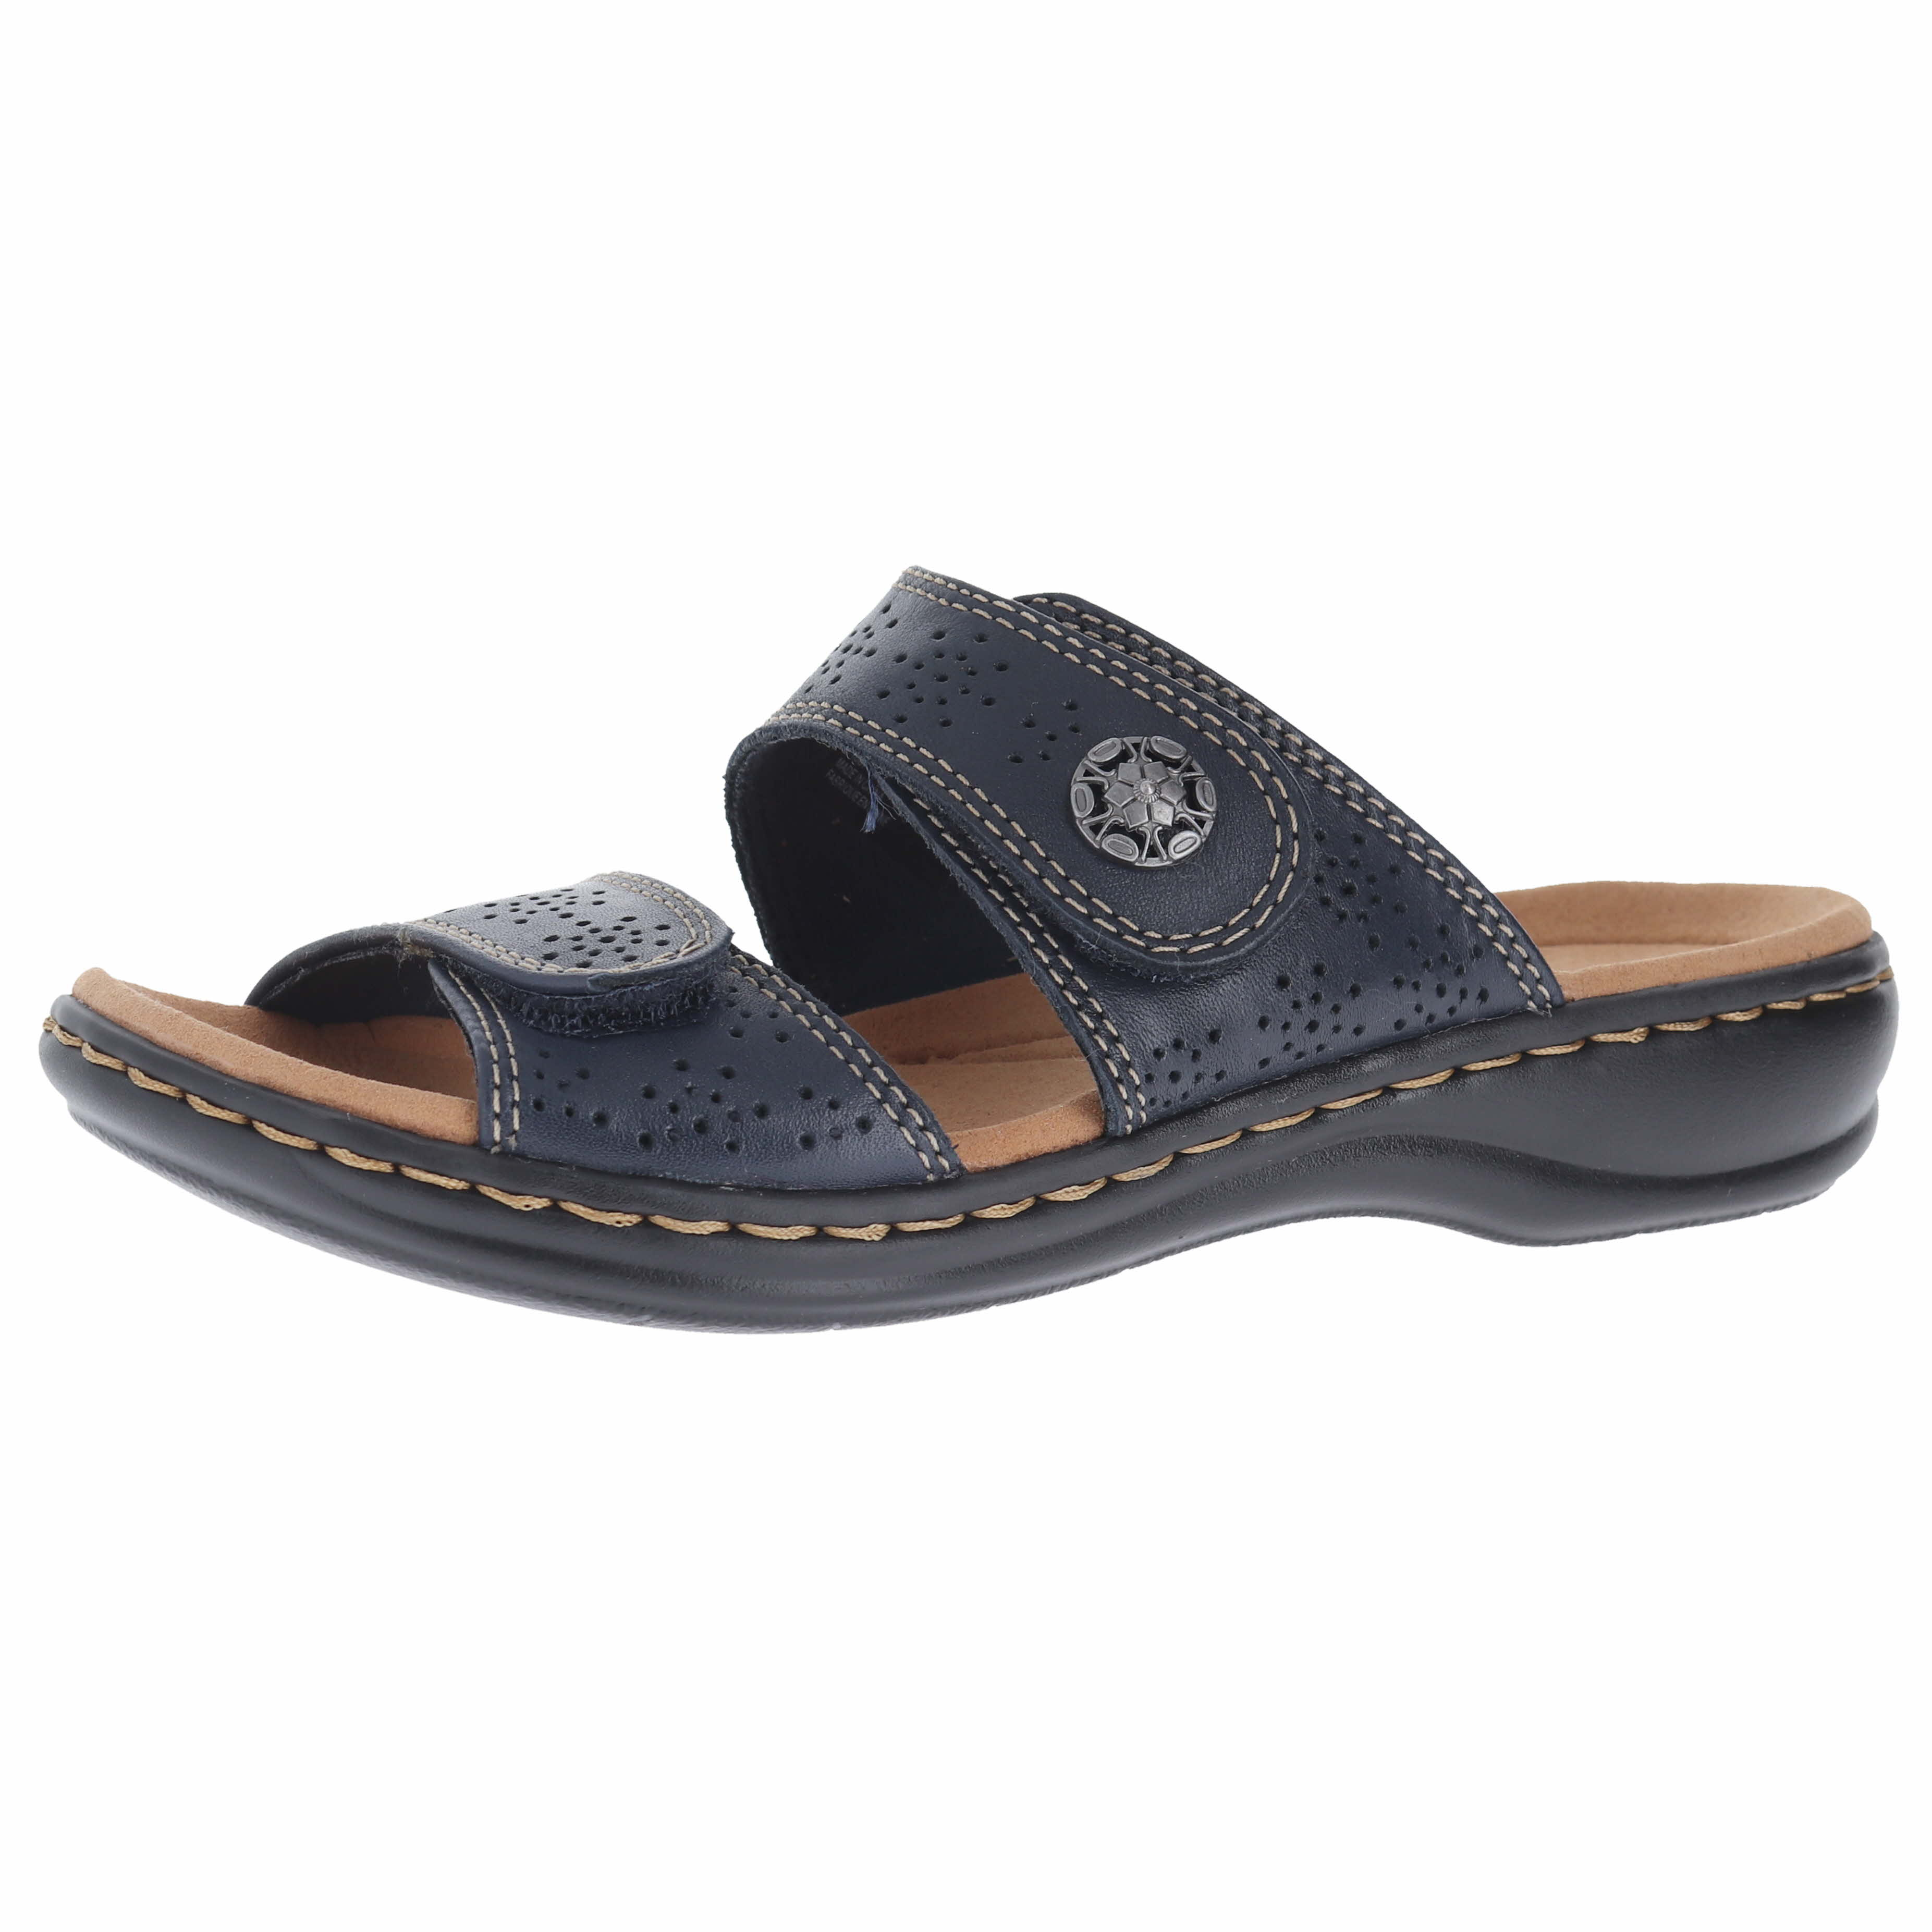 1ae37cf1fccd Clarks Leisa Lacole Navy Leather Womens Slide Size 10M 889305860485 ...